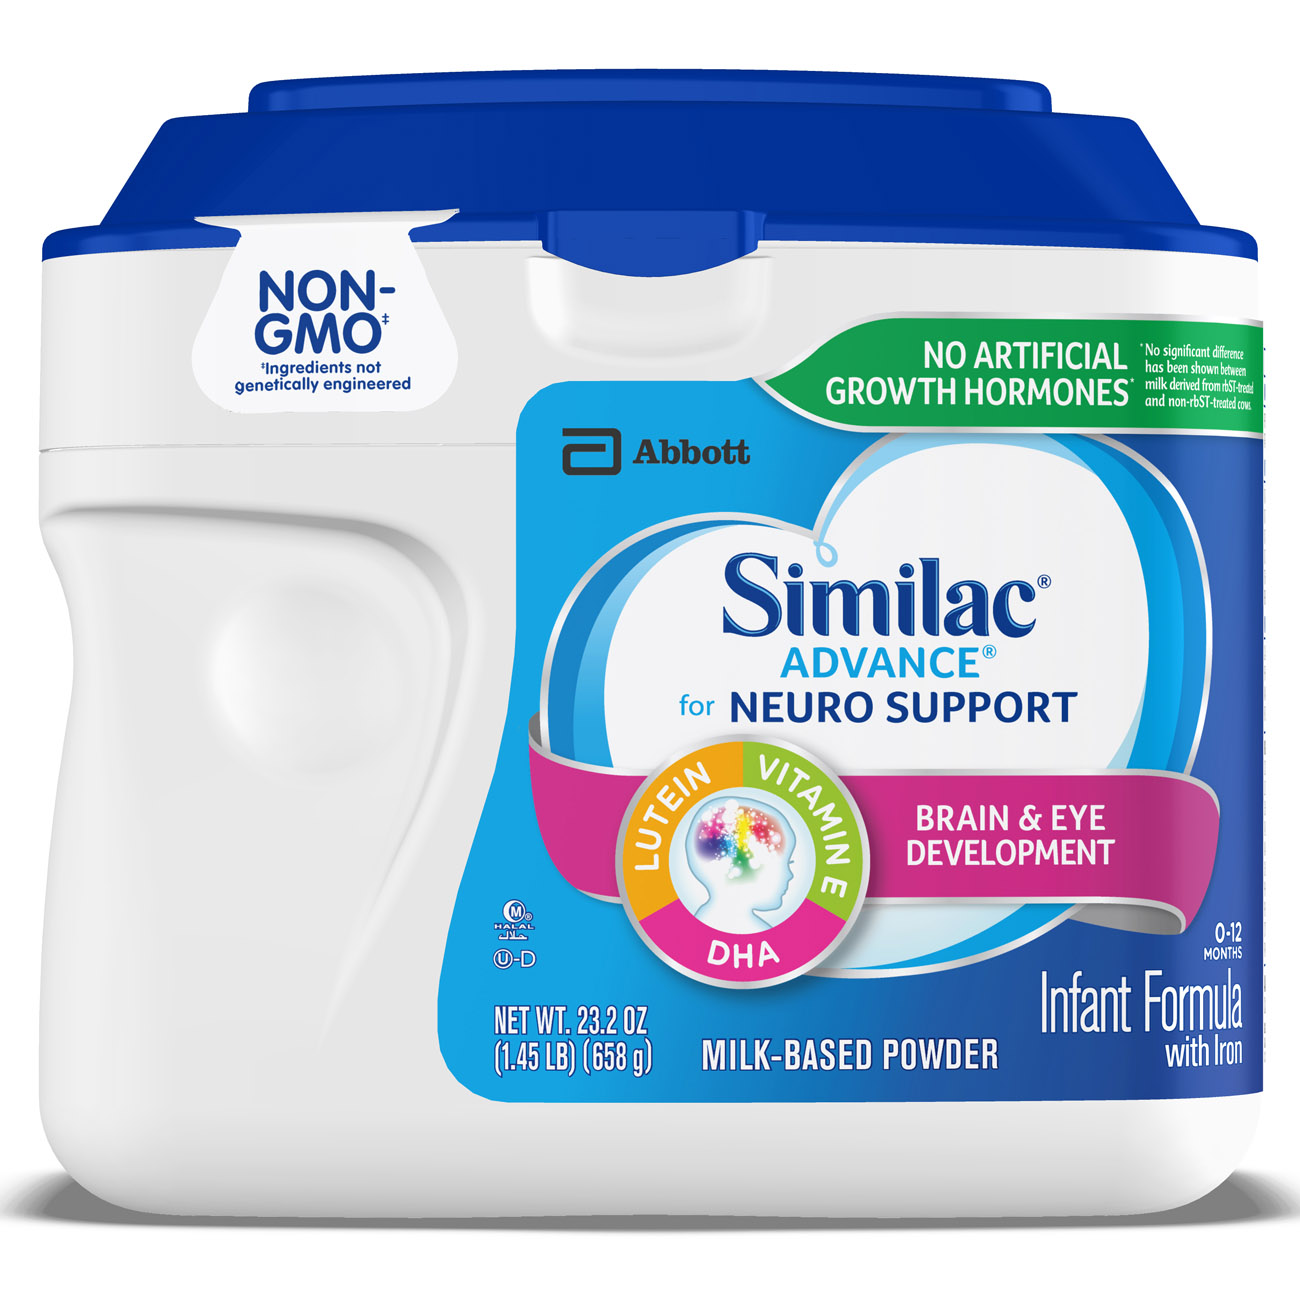 Similac Advance for Neuro Support Infant Formula with Iron Baby Formula 1.45 lb Canisters (Pack of 6) by Similac